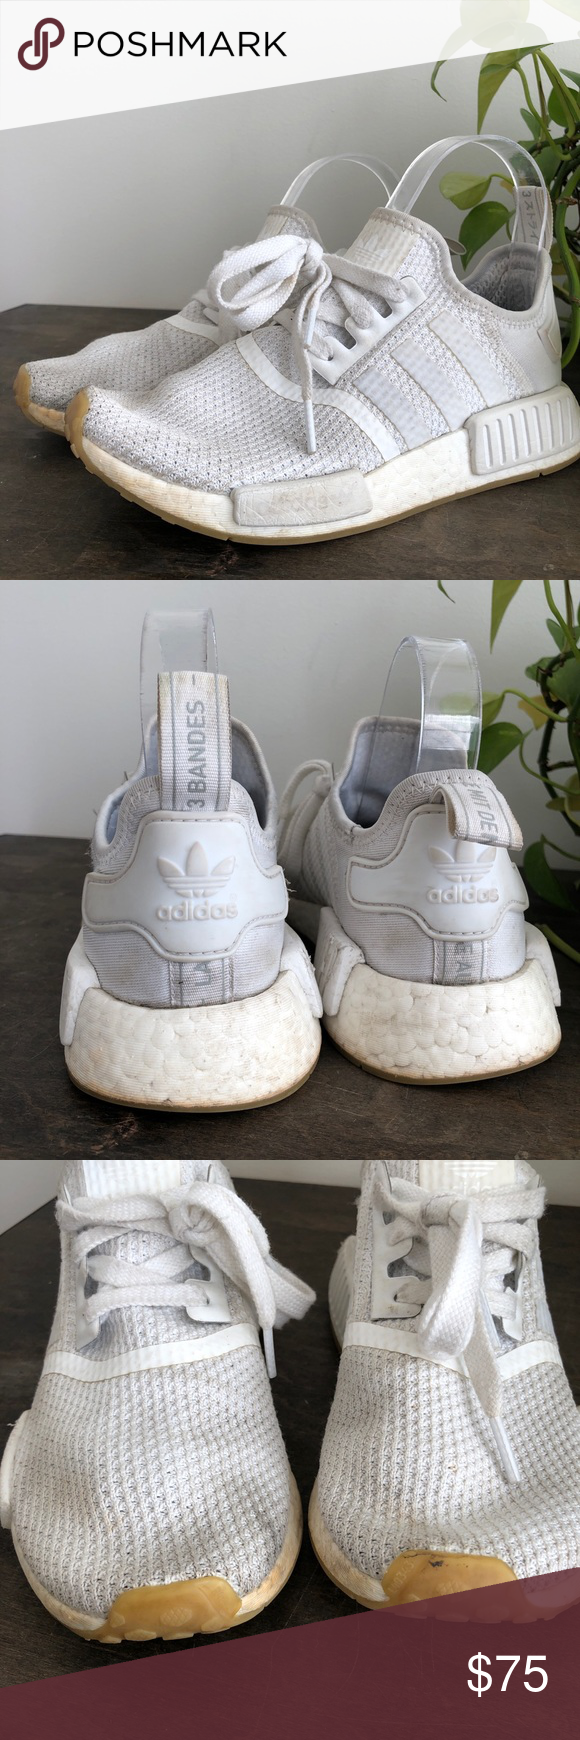 c9b873a2013b3 Adidas Ultra Boost J 3.0 Triple White 4.5 Youth Adidas Ultra Boost J 3.0 Triple  White Size 4.5 Youth Kid s Boys Running BB3047. Condition is preowned.